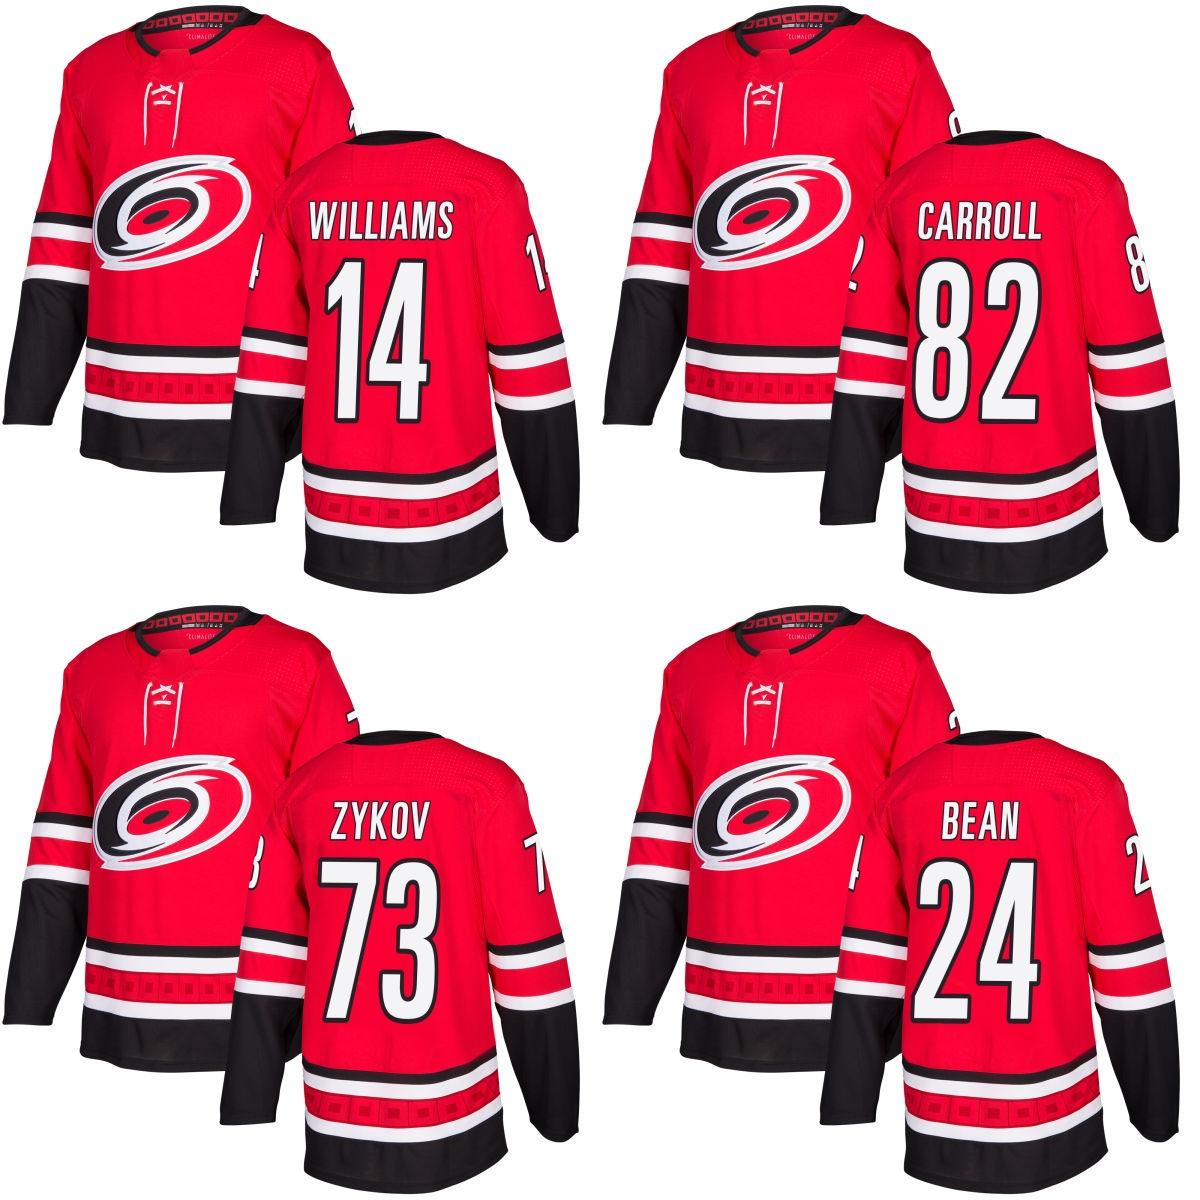 89c9e9b01 2019 2017 New Brand Adults Carolina Hurricanes 14 Justin Williams 24 Jake  Bean 73 Zykov 82 Noah Carroll Best Red Ice Hockey Jerseys Accept Custom  From ...